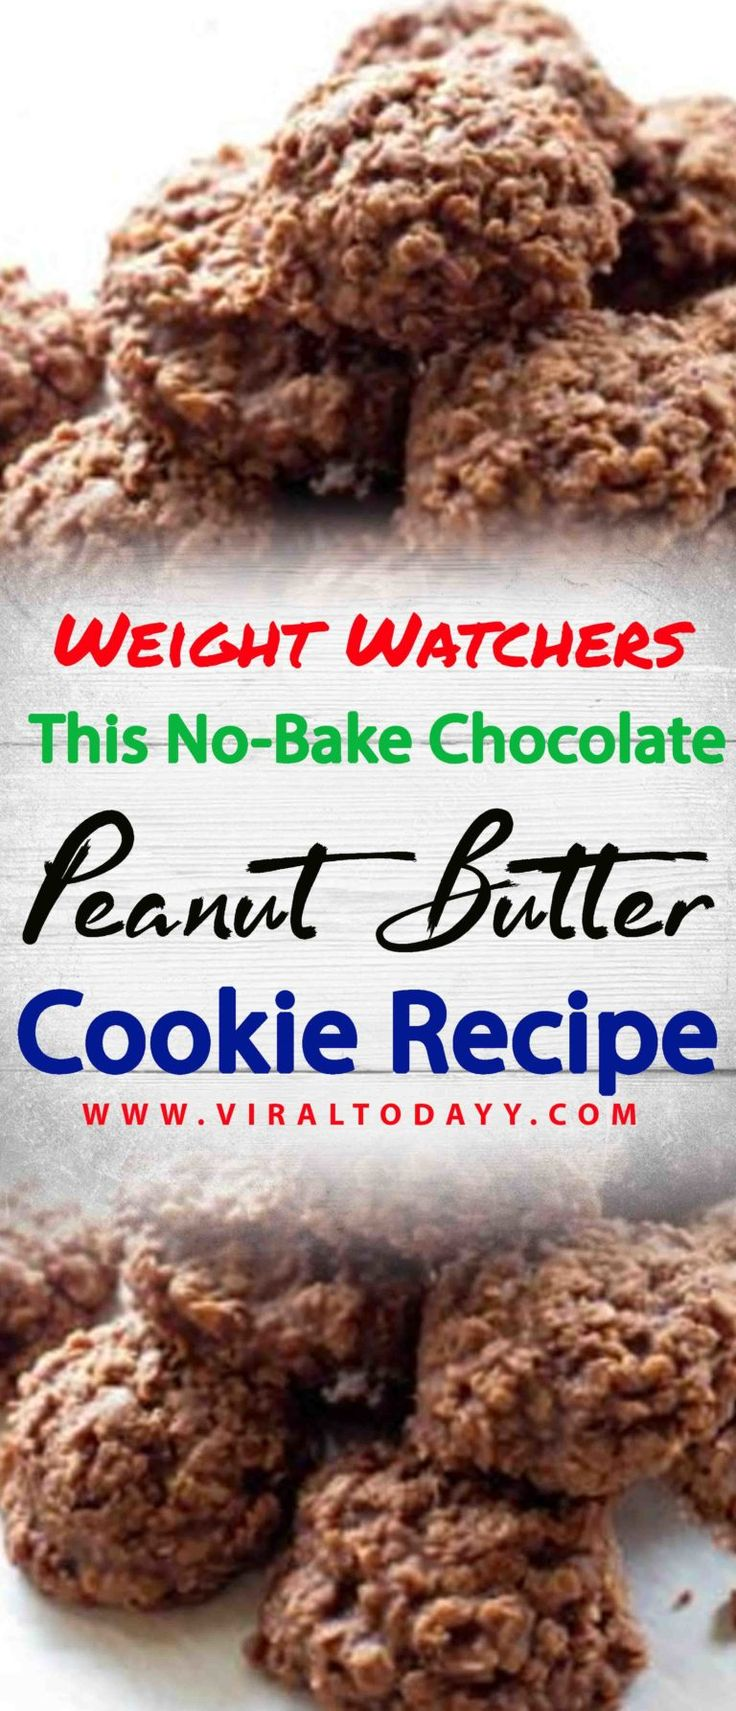 This No-Bake Chocolate Peanut Butter Cookie Recipe…